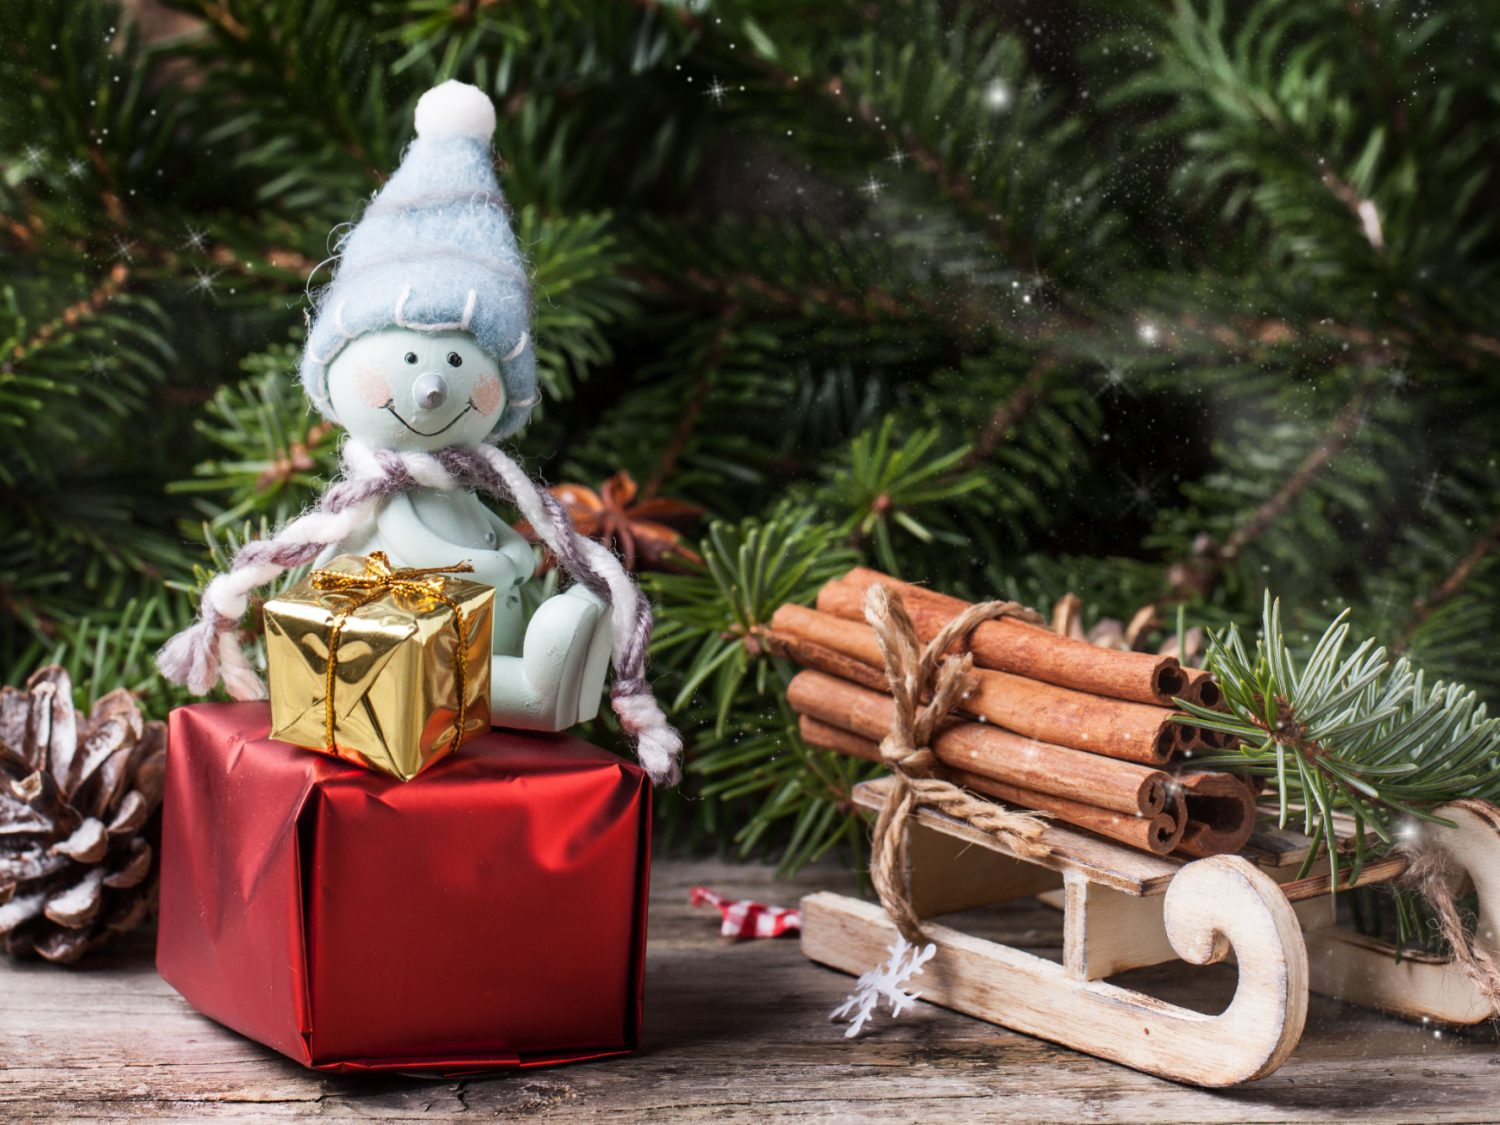 Small package containing gift card for Christmas present. With Snowman.